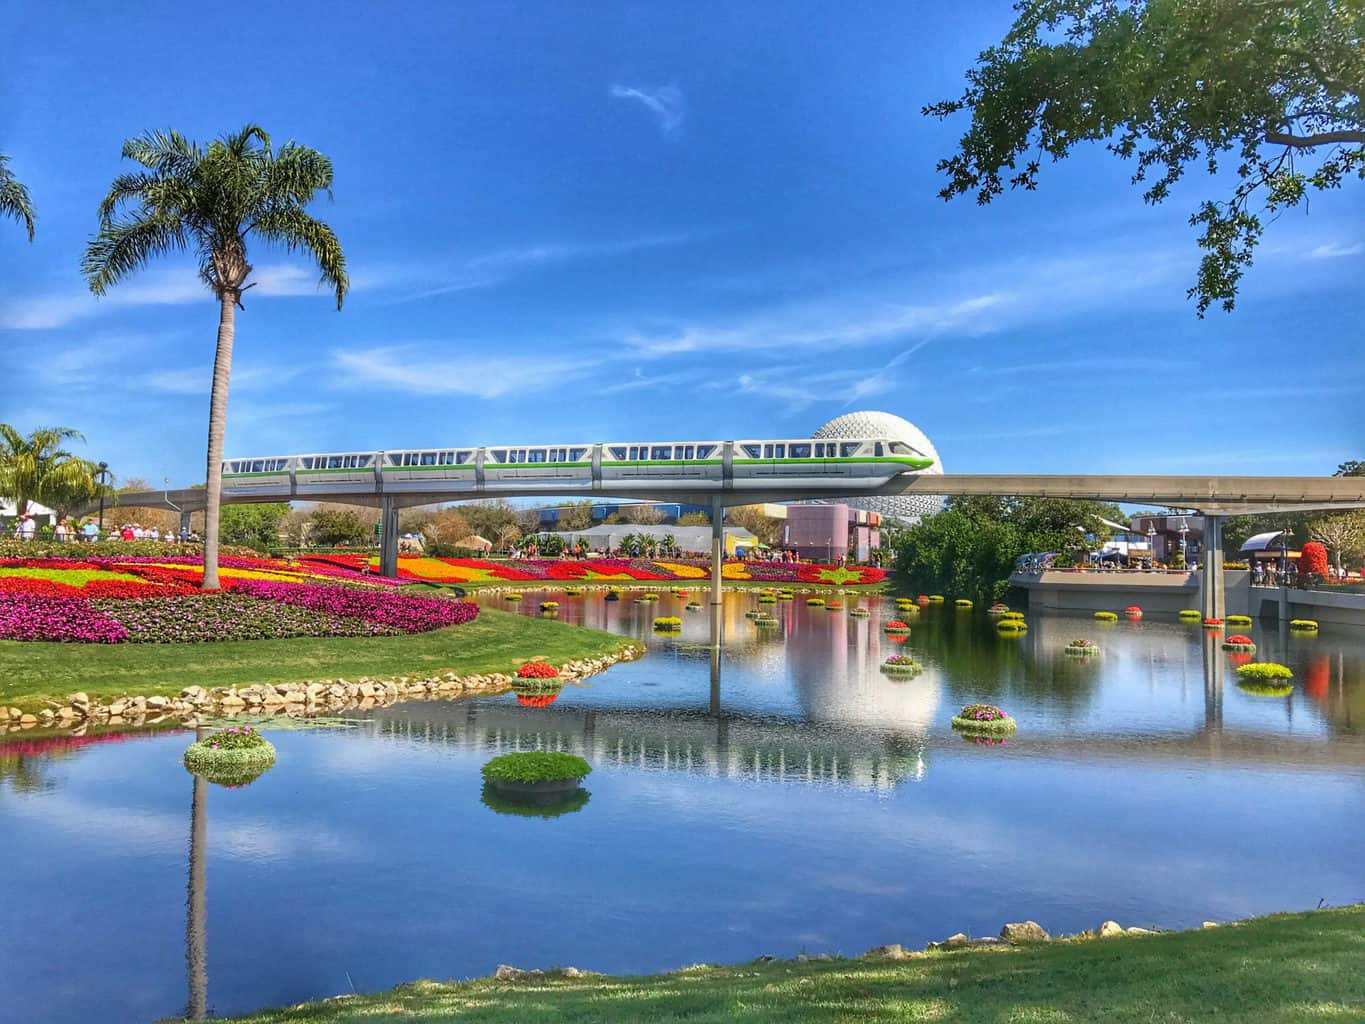 The Best Photography Spots in Walt Disney World